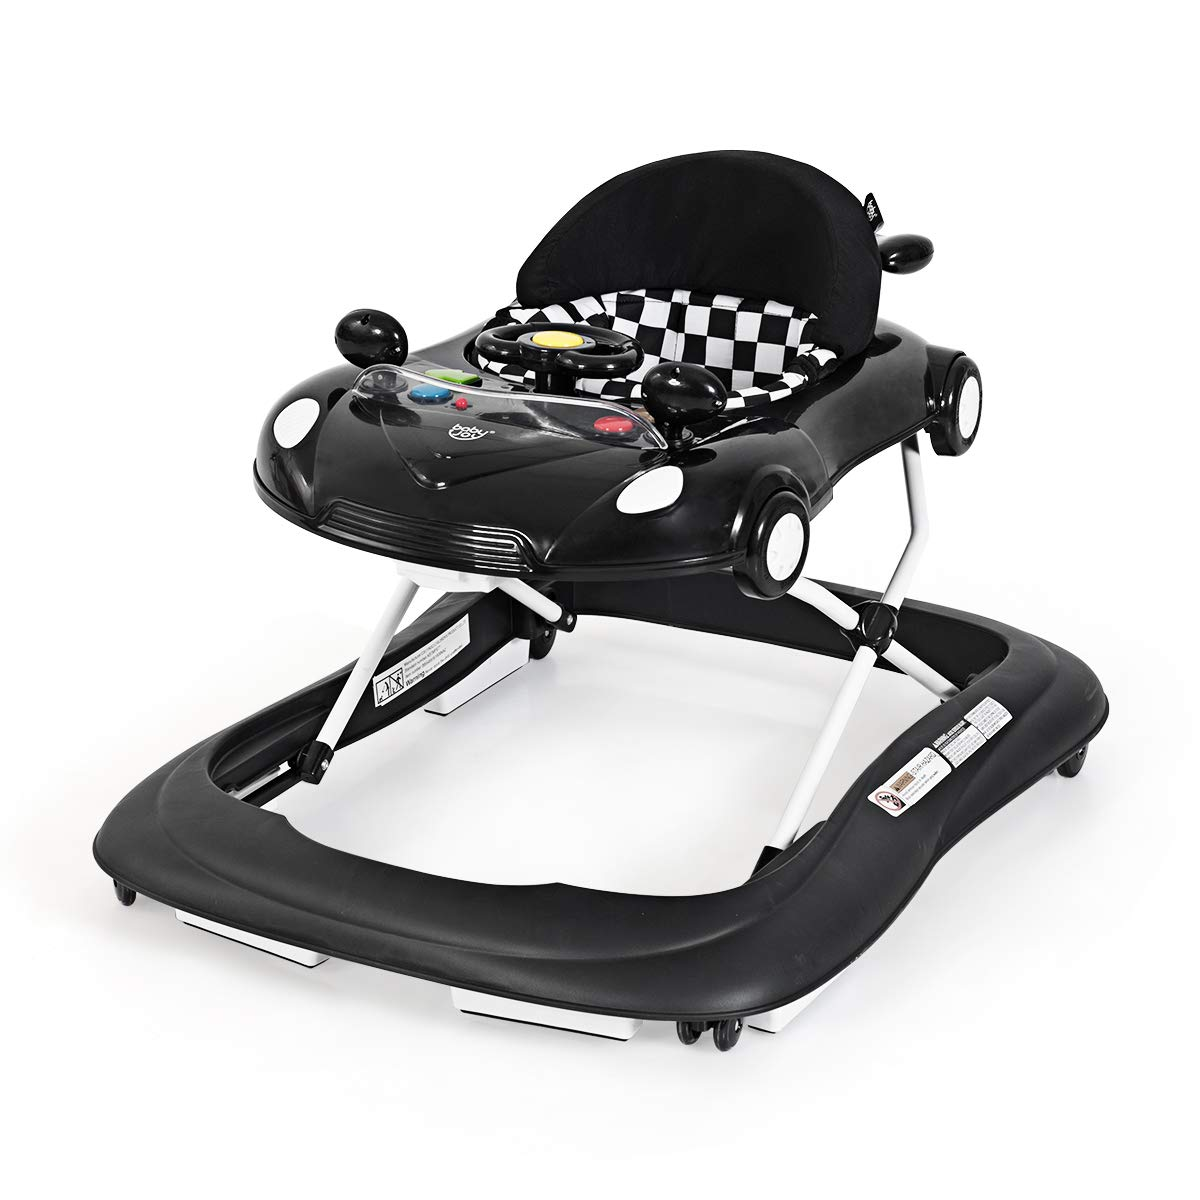 BABY JOY Baby Walker, Activity Walker with Adjustable Height & Lights, Music, Steering Wheel, Mirrors, Removable Tray to Food Tray, High Back Padded Seat, Compact Folding Design (Black)